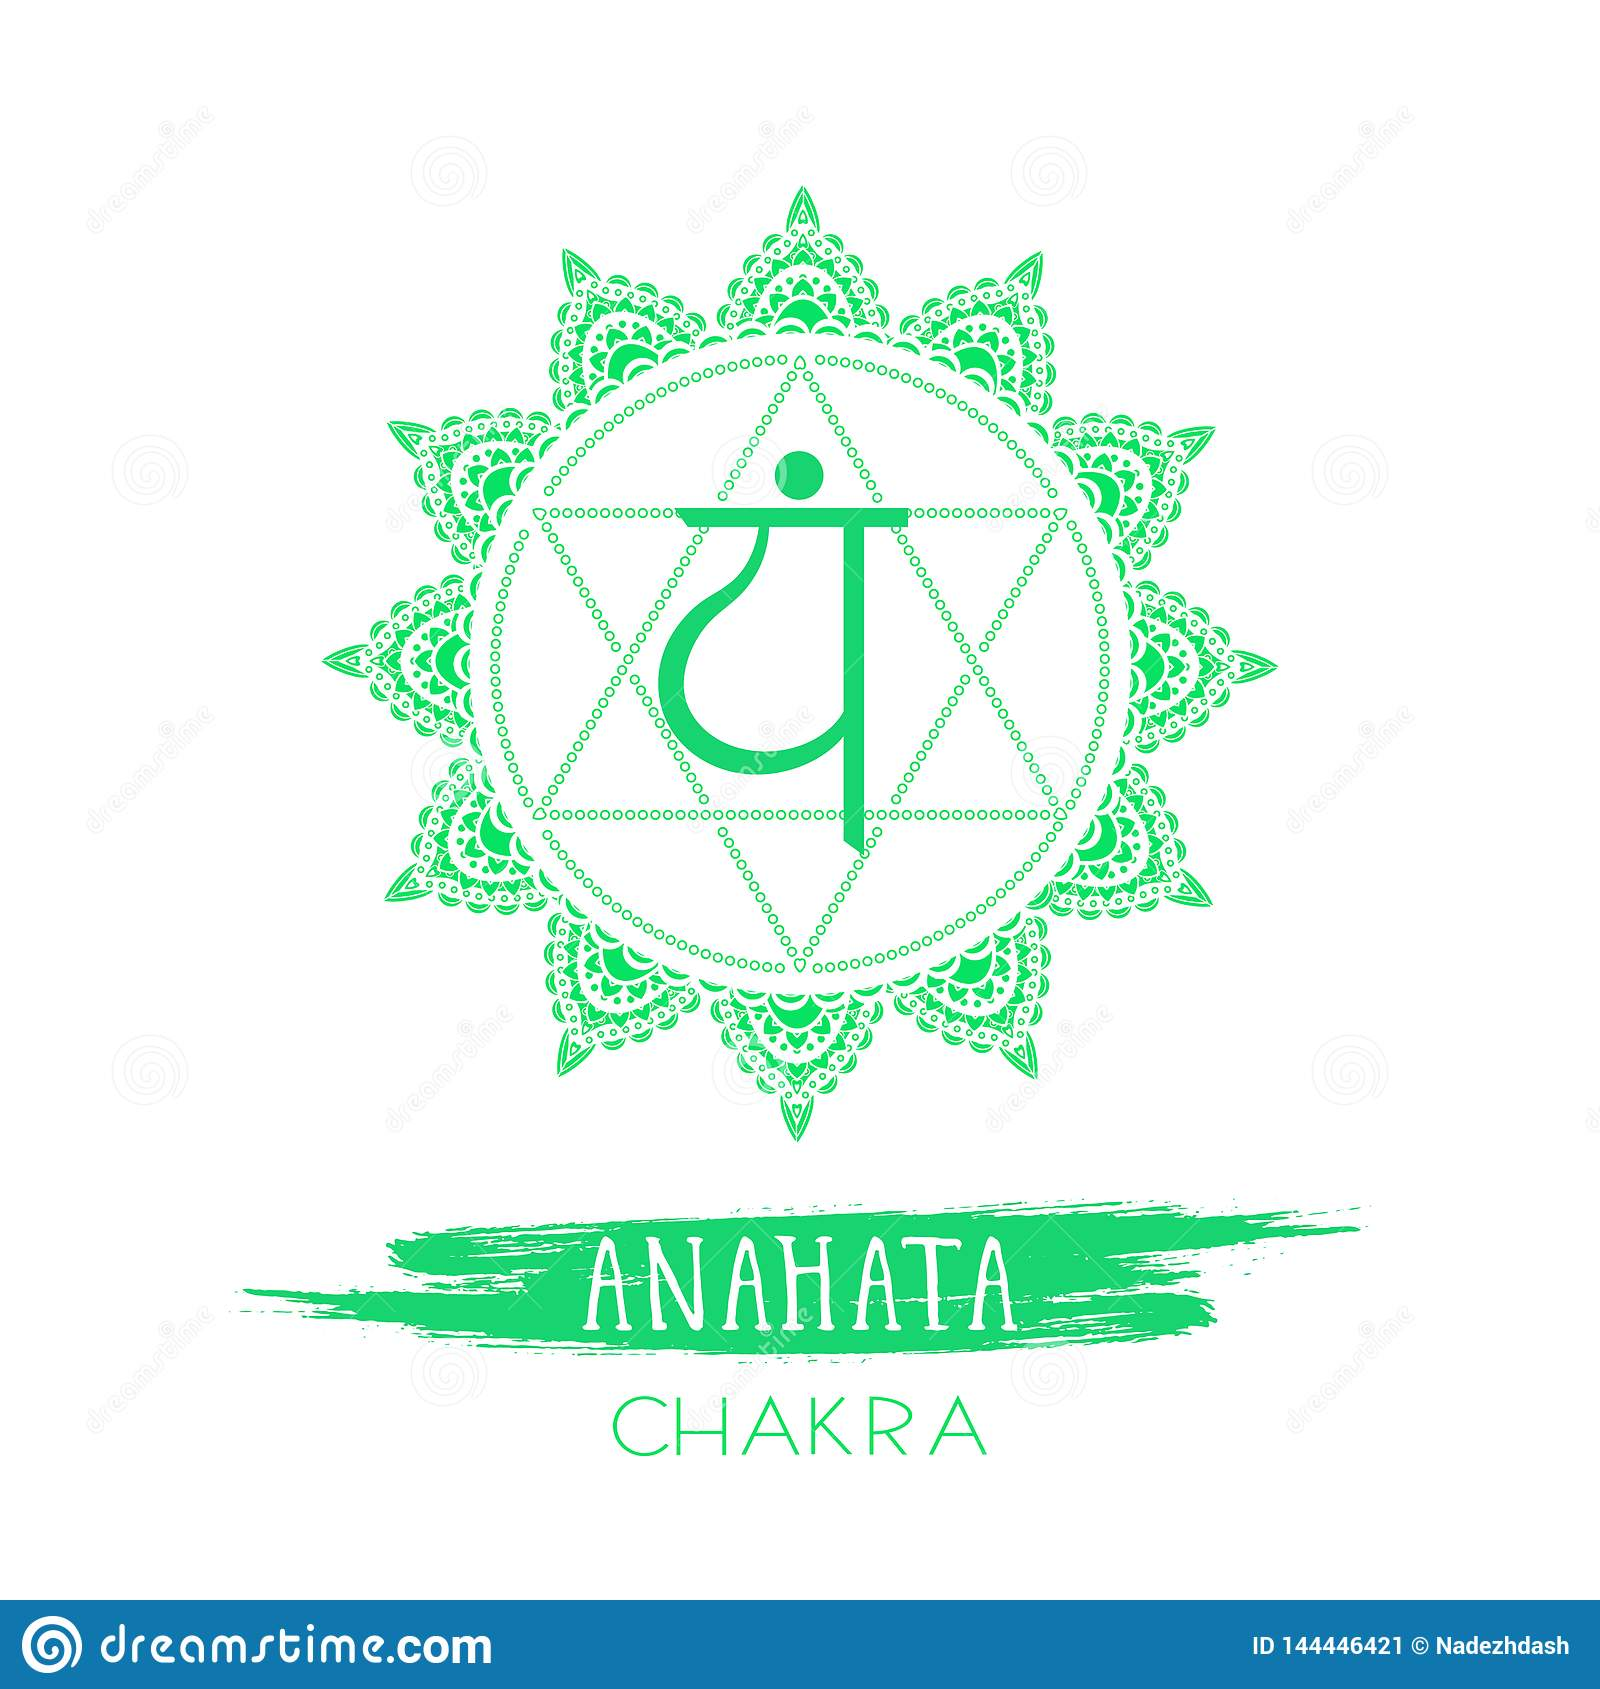 Vector illustration with symbol Anahata - Heart chakra and watercolor element on white background